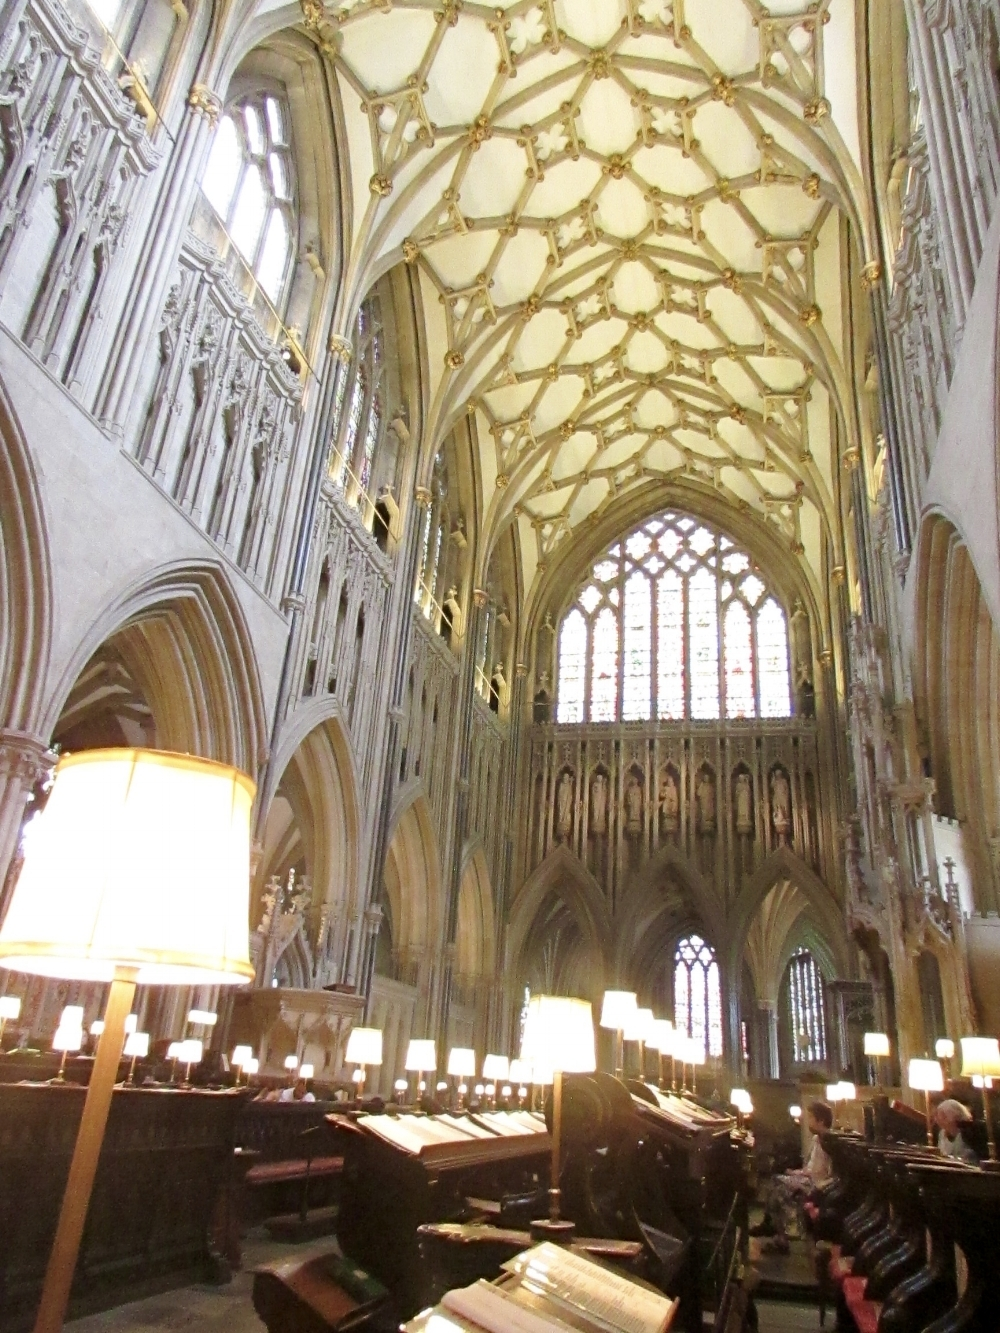 WAITING FOR EVENSONG IN WELLS CATHEDRAL